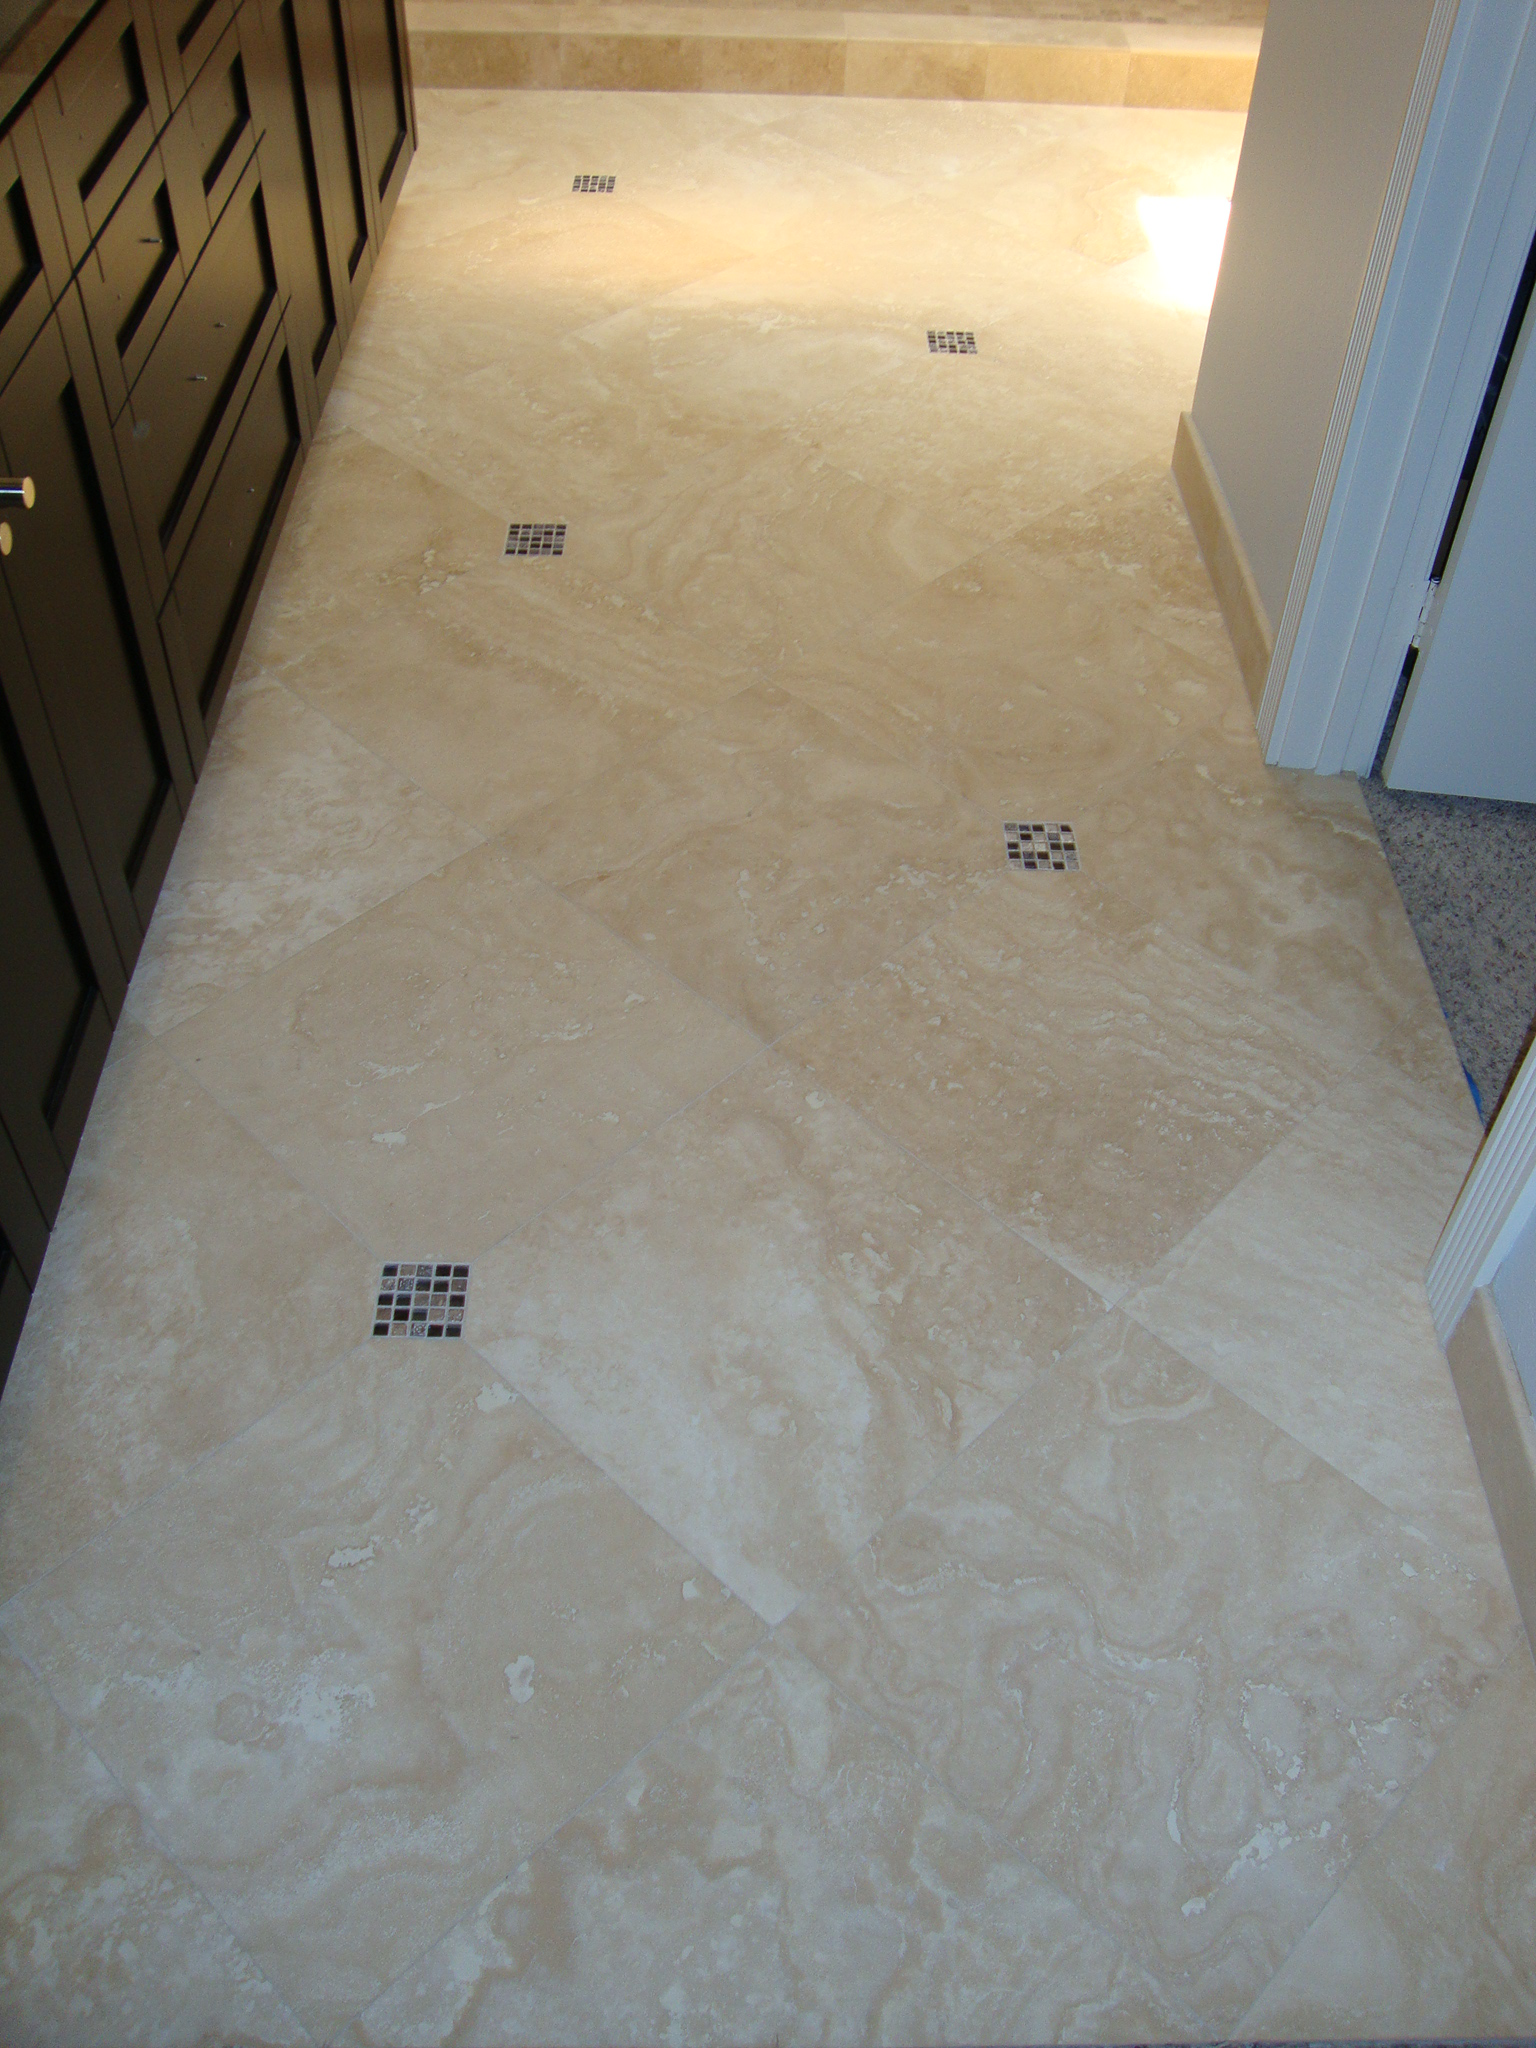 Floor tiles flooring tiles westside tile and stone dailygadgetfo Choice Image